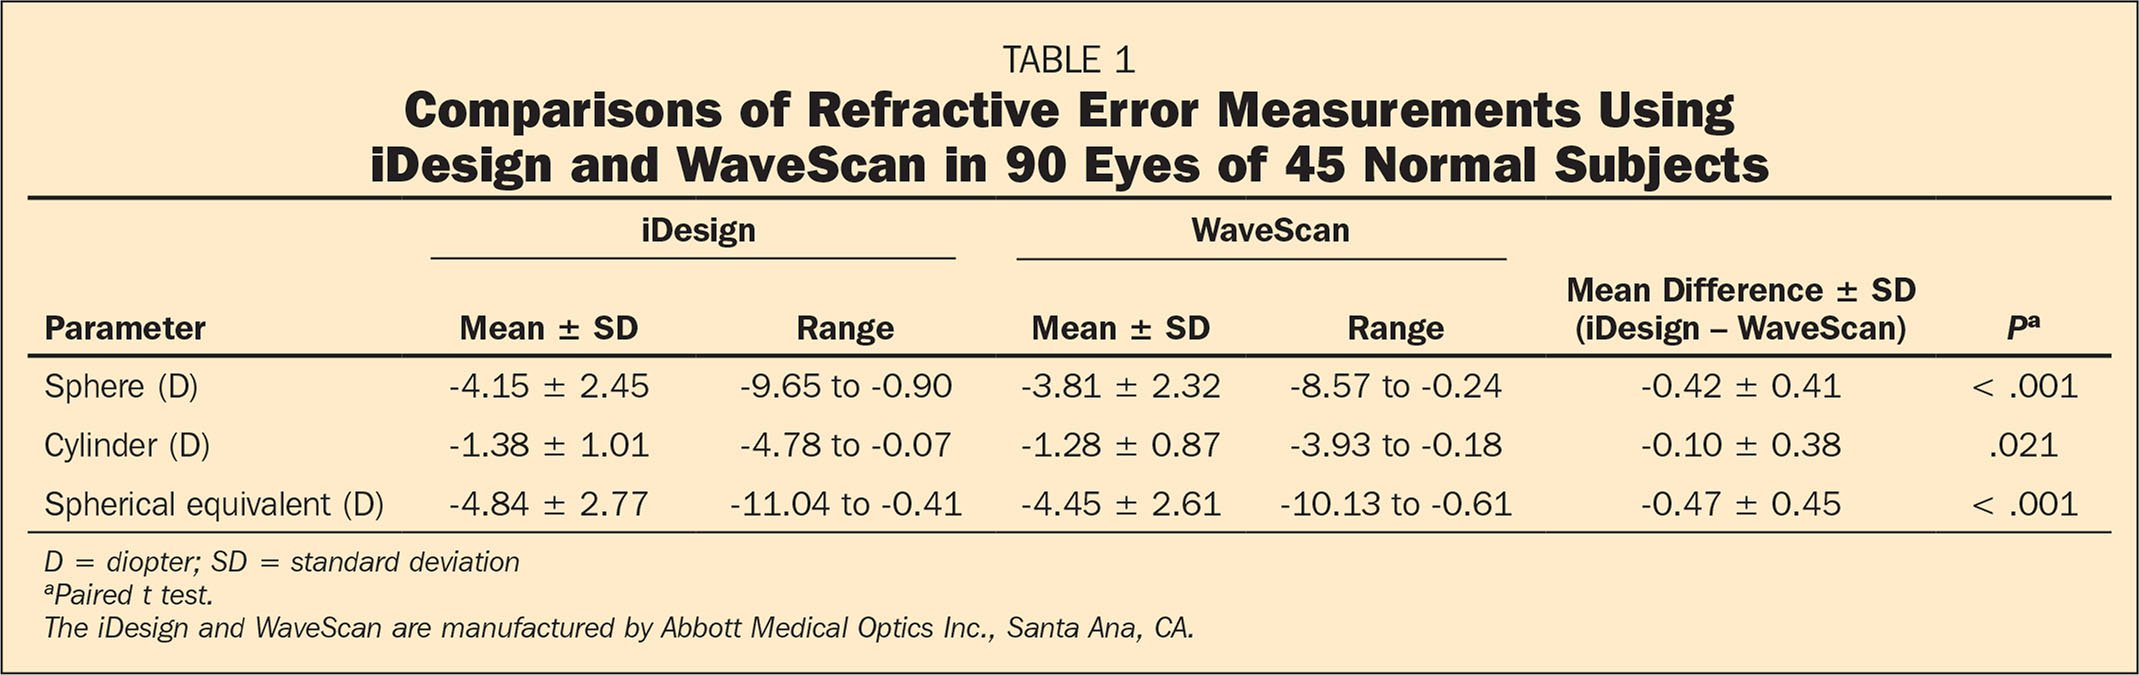 Comparisons of Refractive Error Measurements Using iDesign and WaveScan in 90 Eyes of 45 Normal Subjects